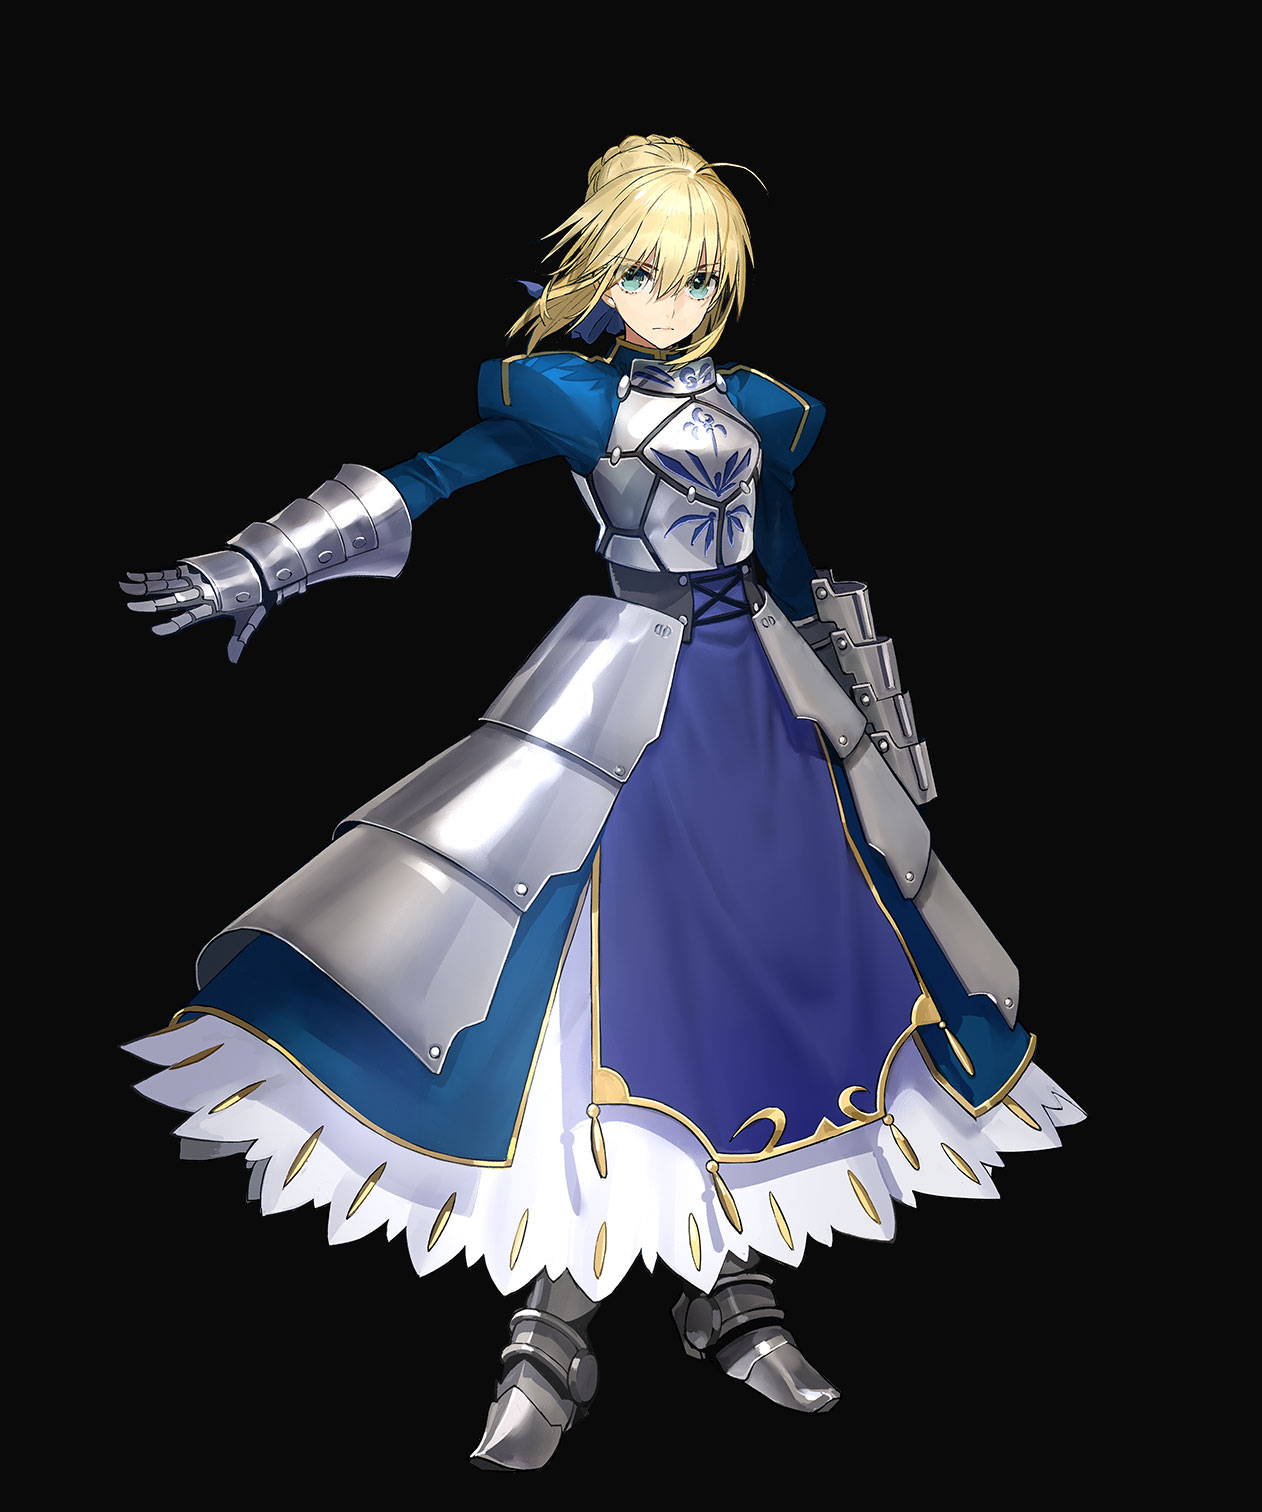 Fate/EXTELLA: The Umbral Star - Artoria Pendragon